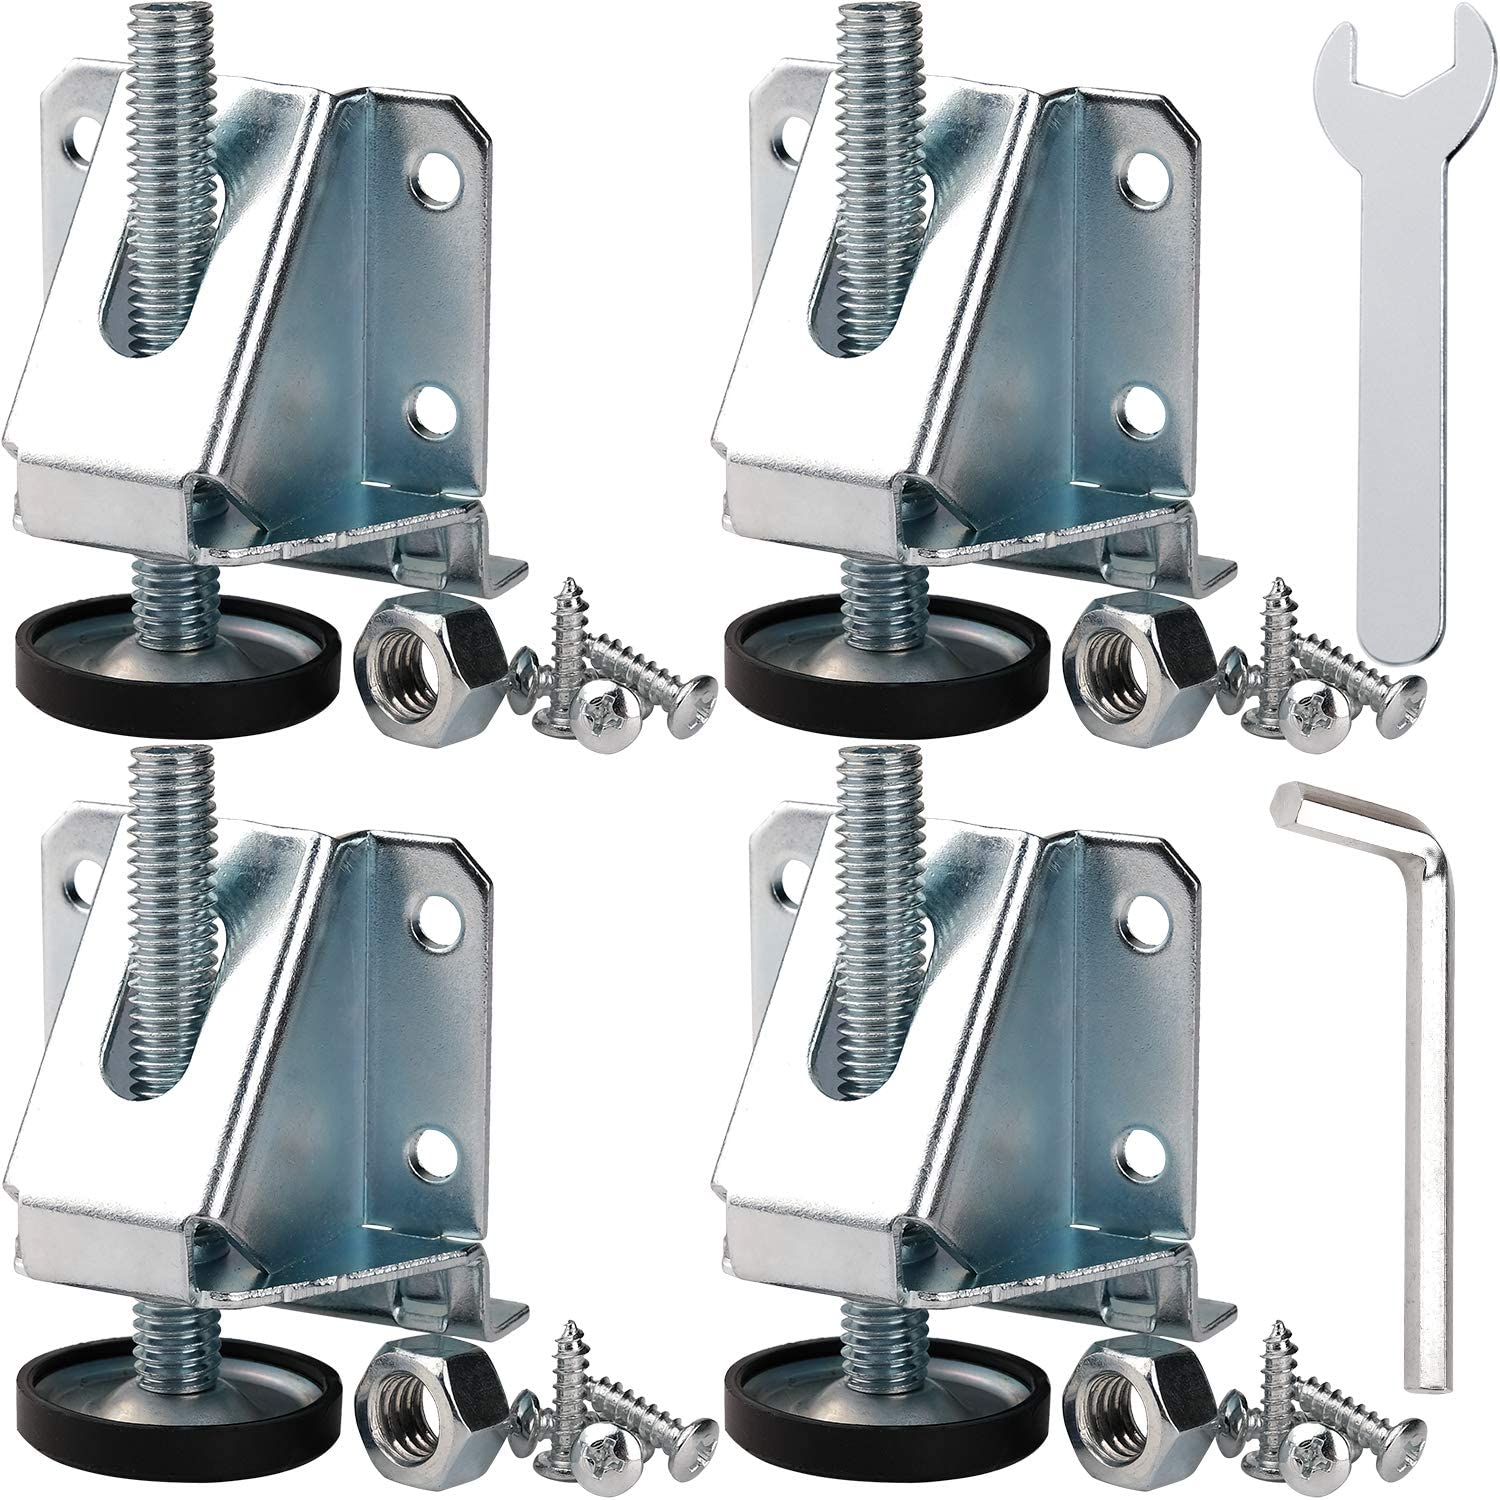 Anwenk Leveling Feet Heavy Duty Furniture Levelers Adjustable Table Leg Leveler w/Lock Nuts for Furniture,Table, Cabinets, Workbench,Shelving Units and More